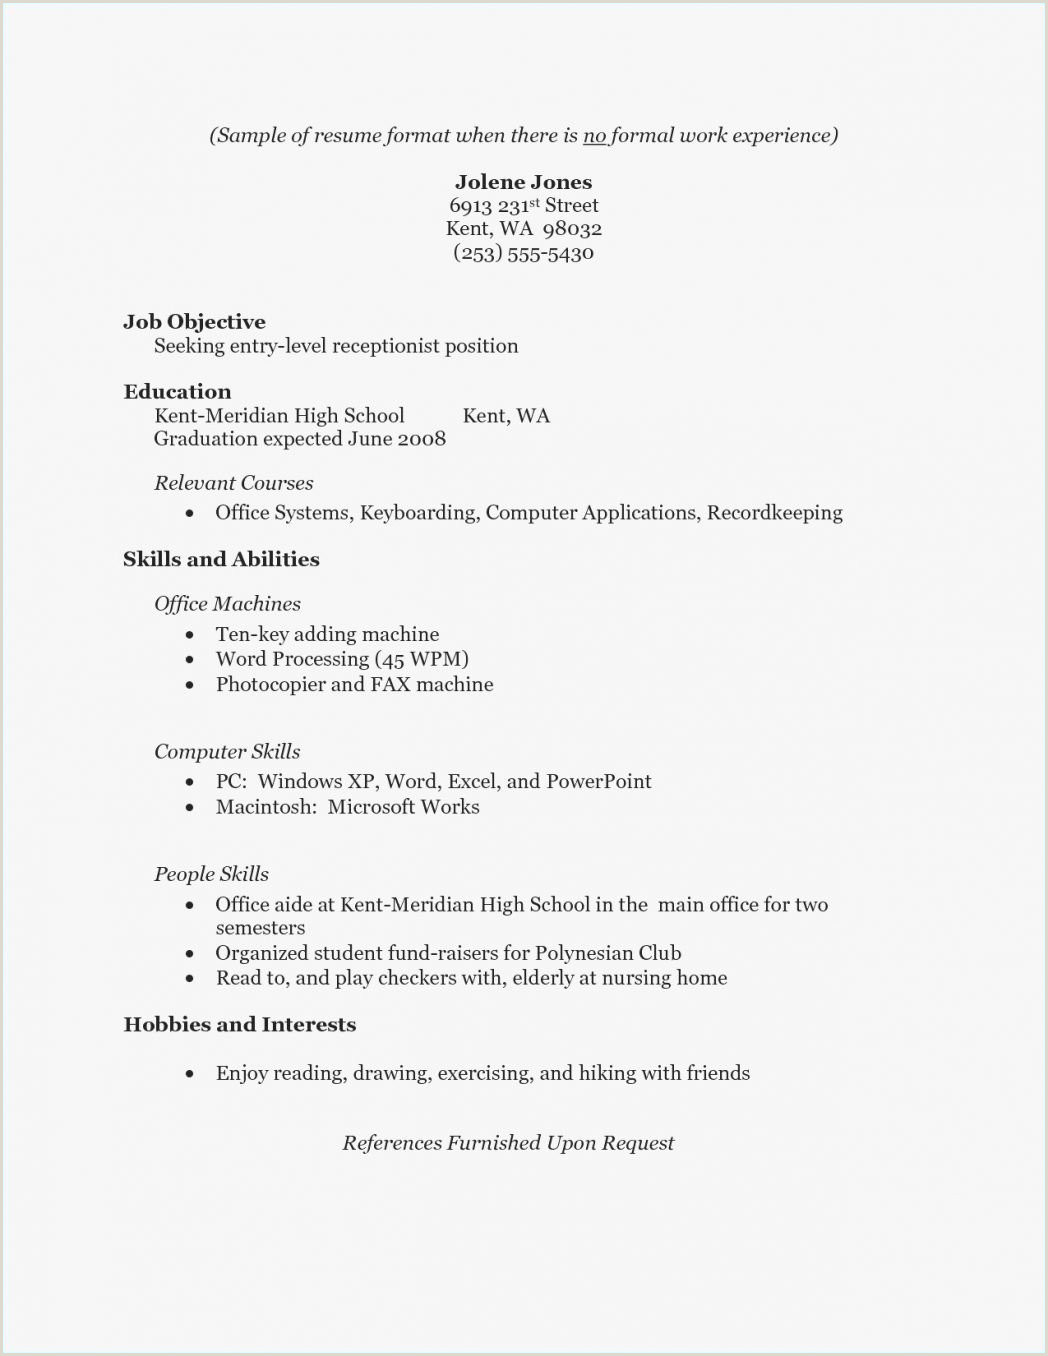 Resume for Receptionist with No Experience Unique Nanny